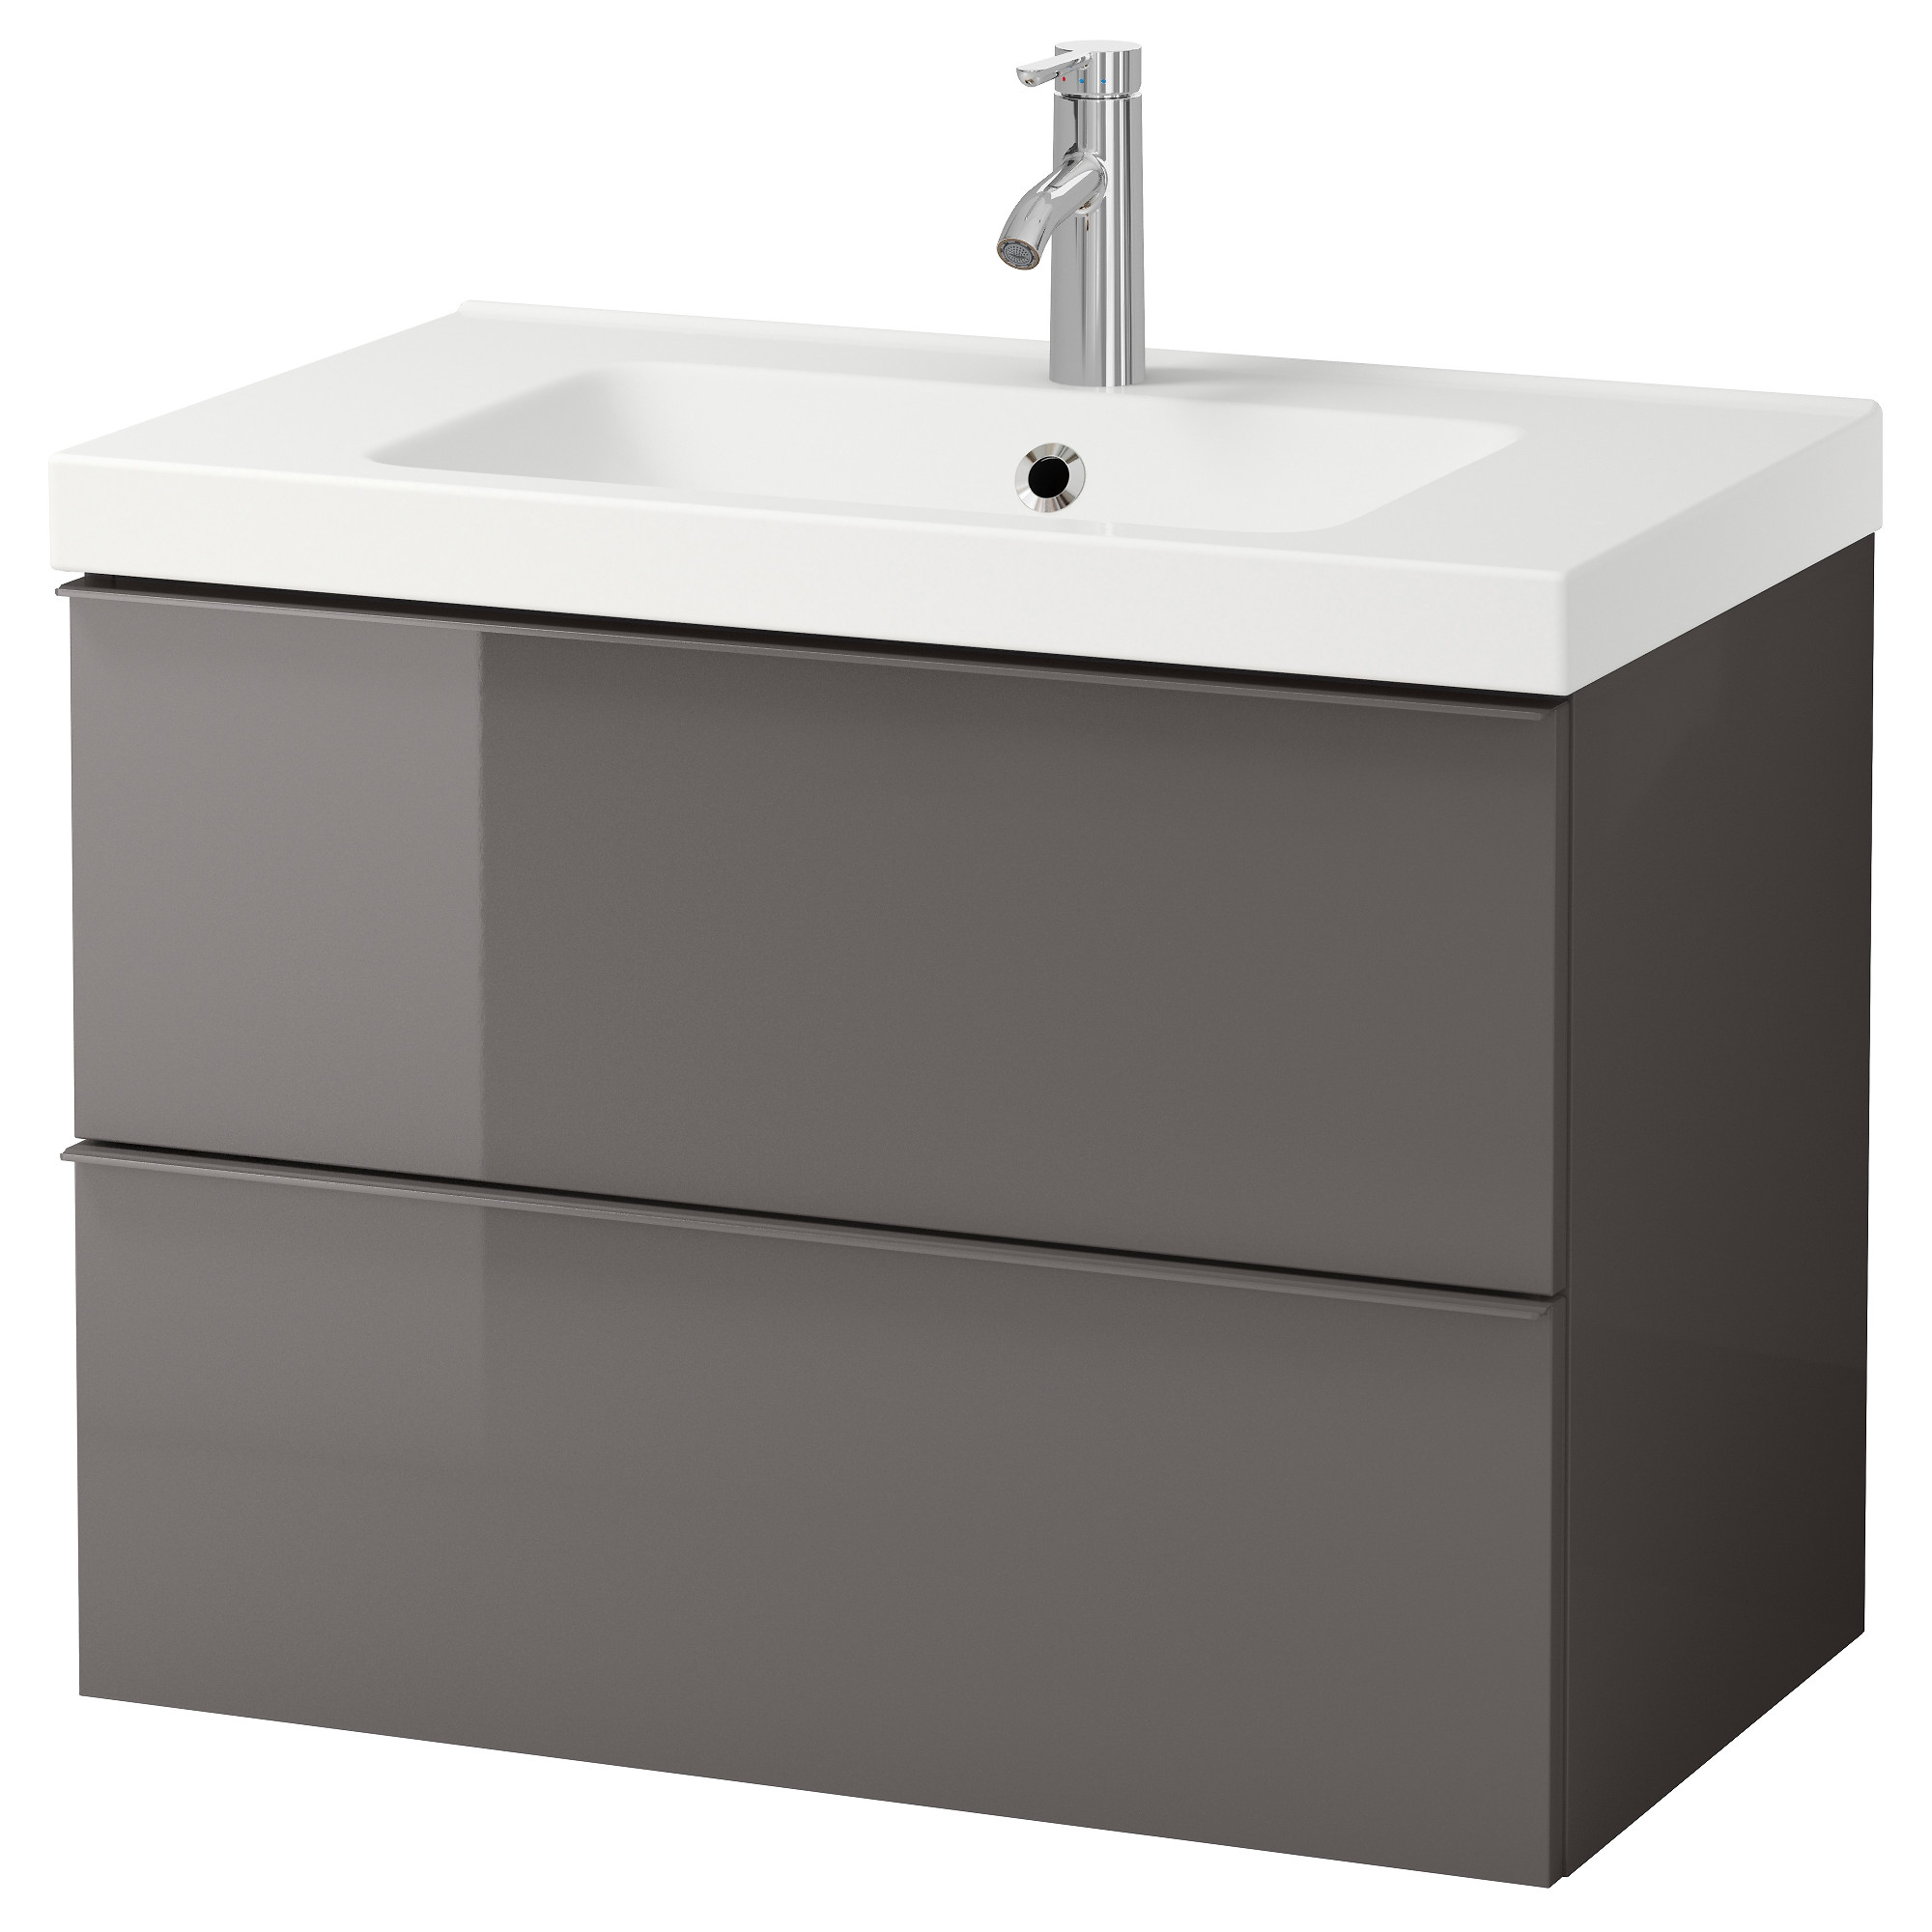 Bathroom sink cabinets ikea - Godmorgon odensvik sink cabinet with 2 drawers high gloss white 31 1 2x19 1 4x25 1 4 ikea